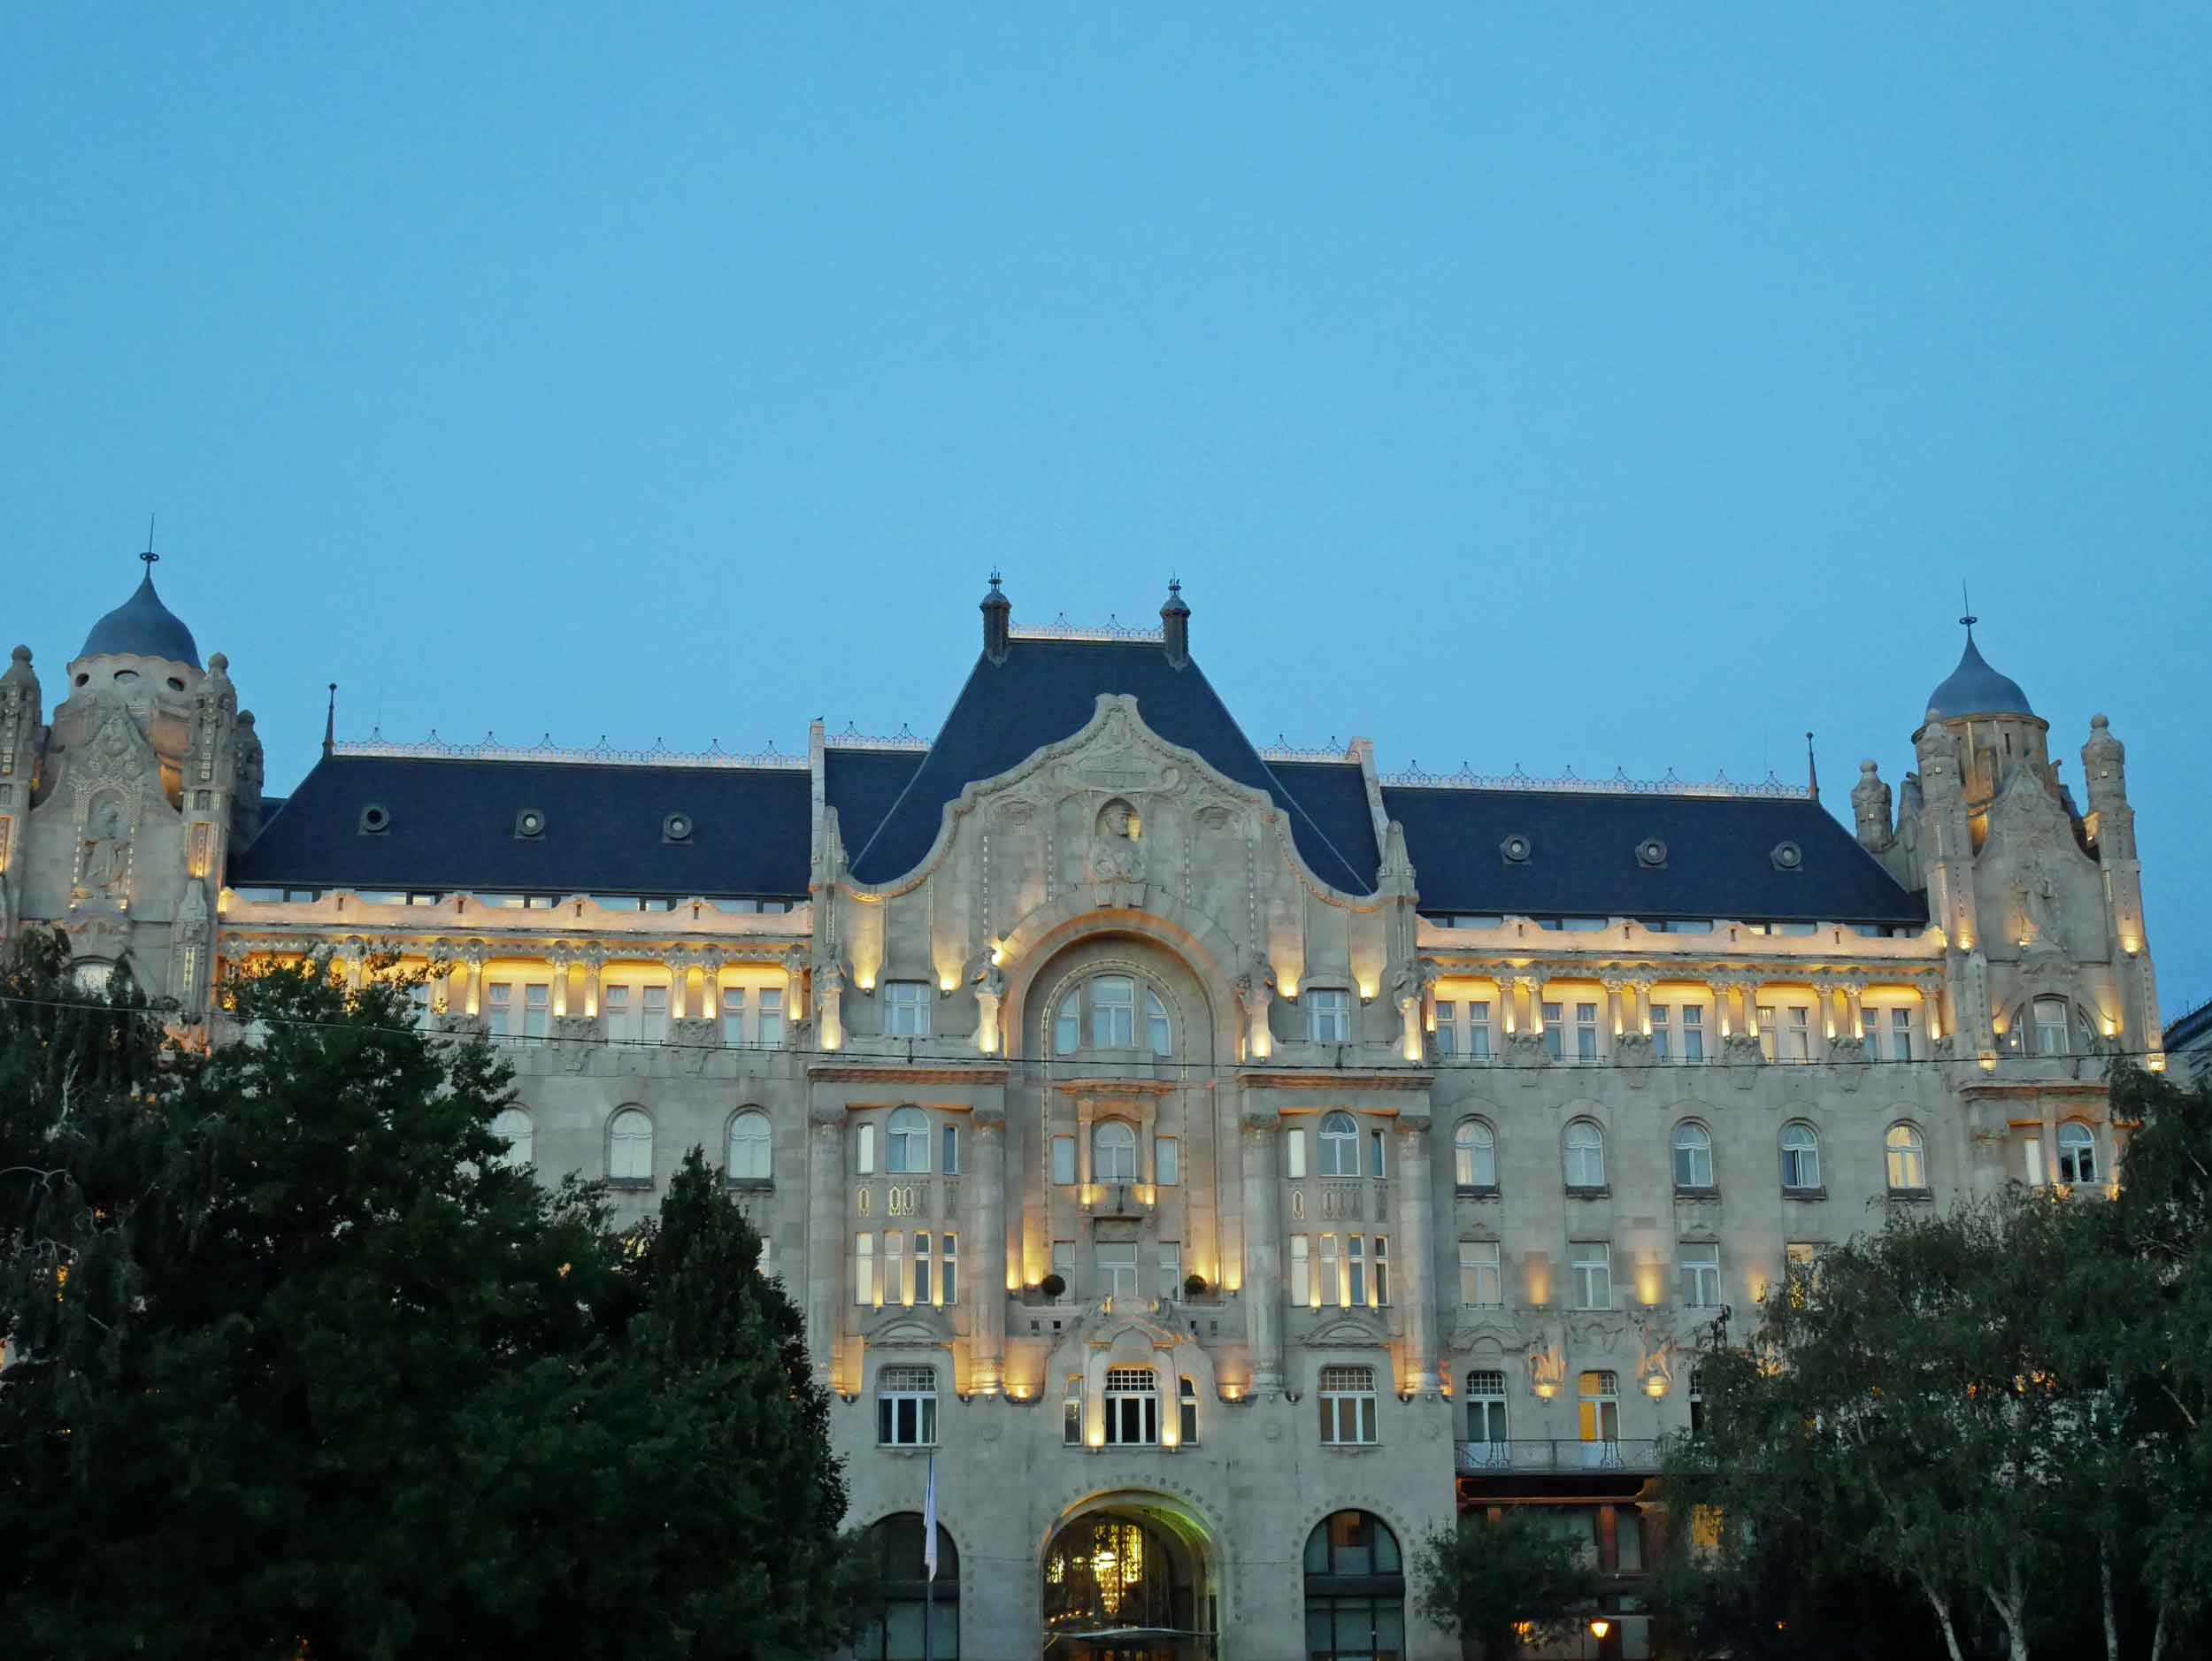 Arriving in Budapest, we were awed by the grand architecture, like the former Gresham Palace, now a Four Seasons hotel (Aug 24).